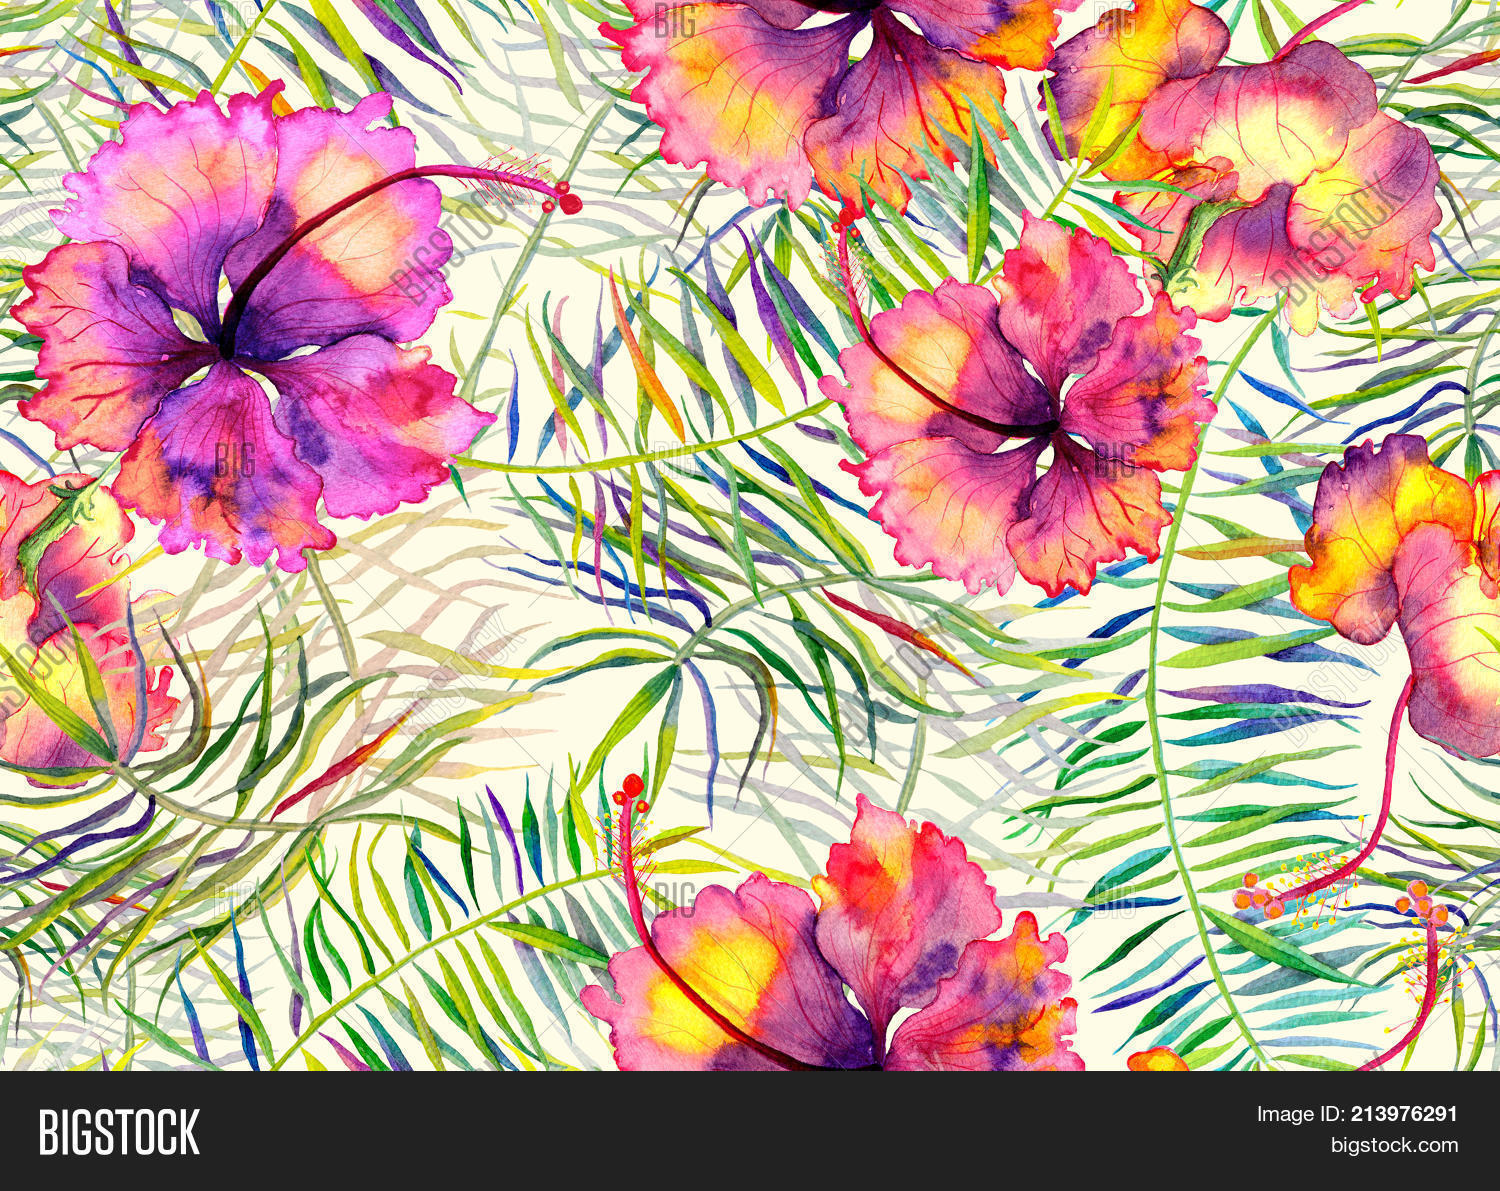 Hibiscus Pattern Image Photo Free Trial Bigstock